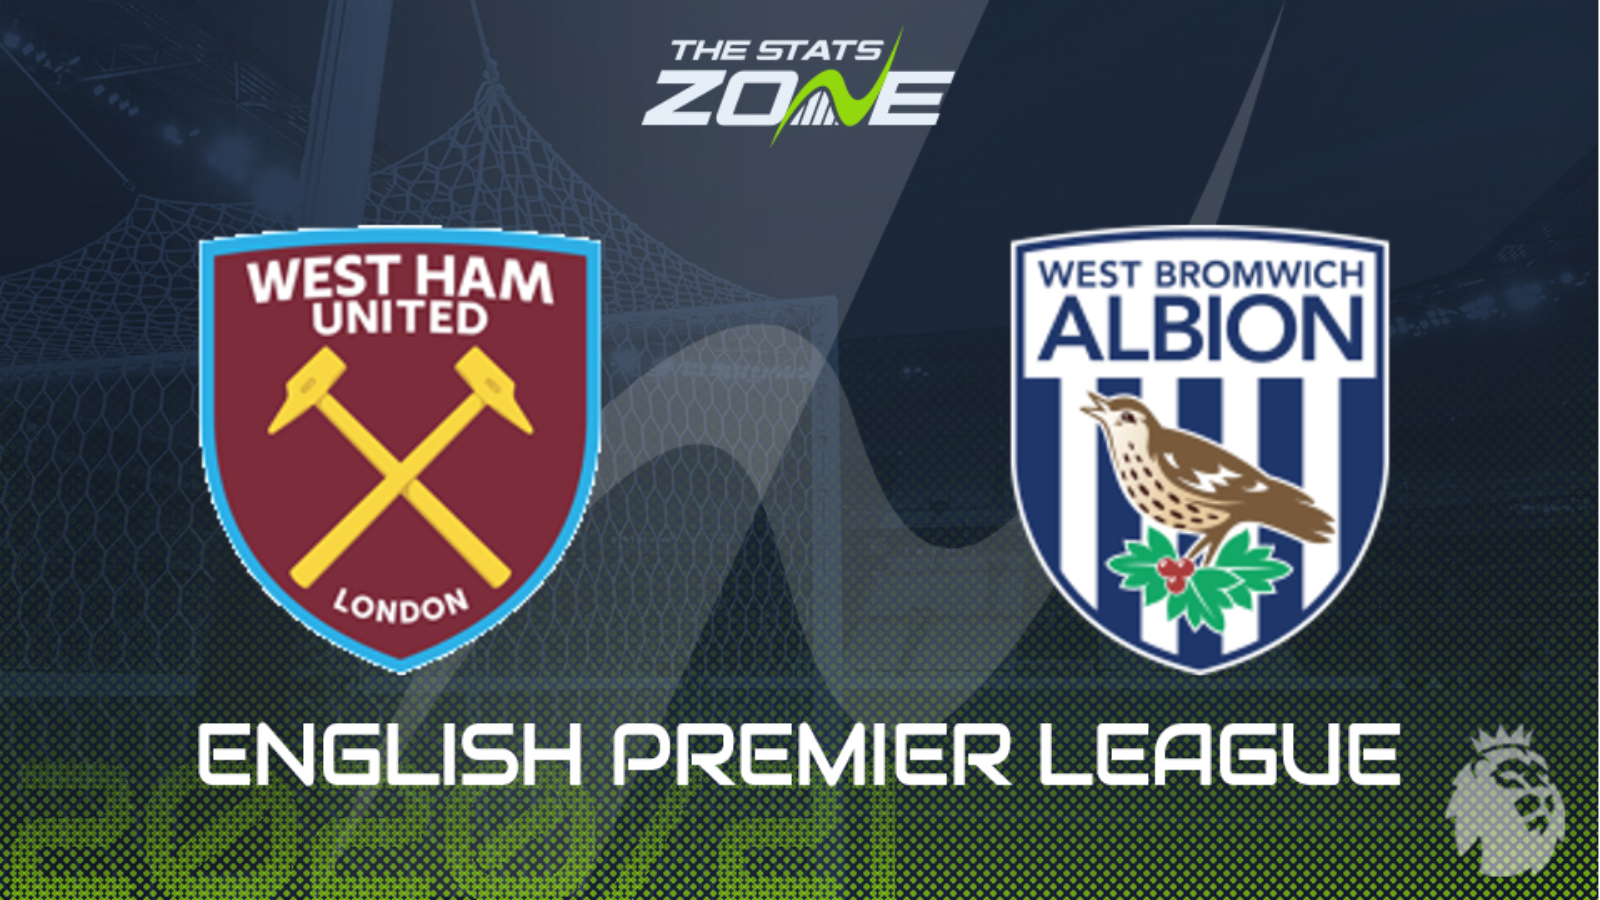 West ham vs west brom betting preview lay betting at betfair casino